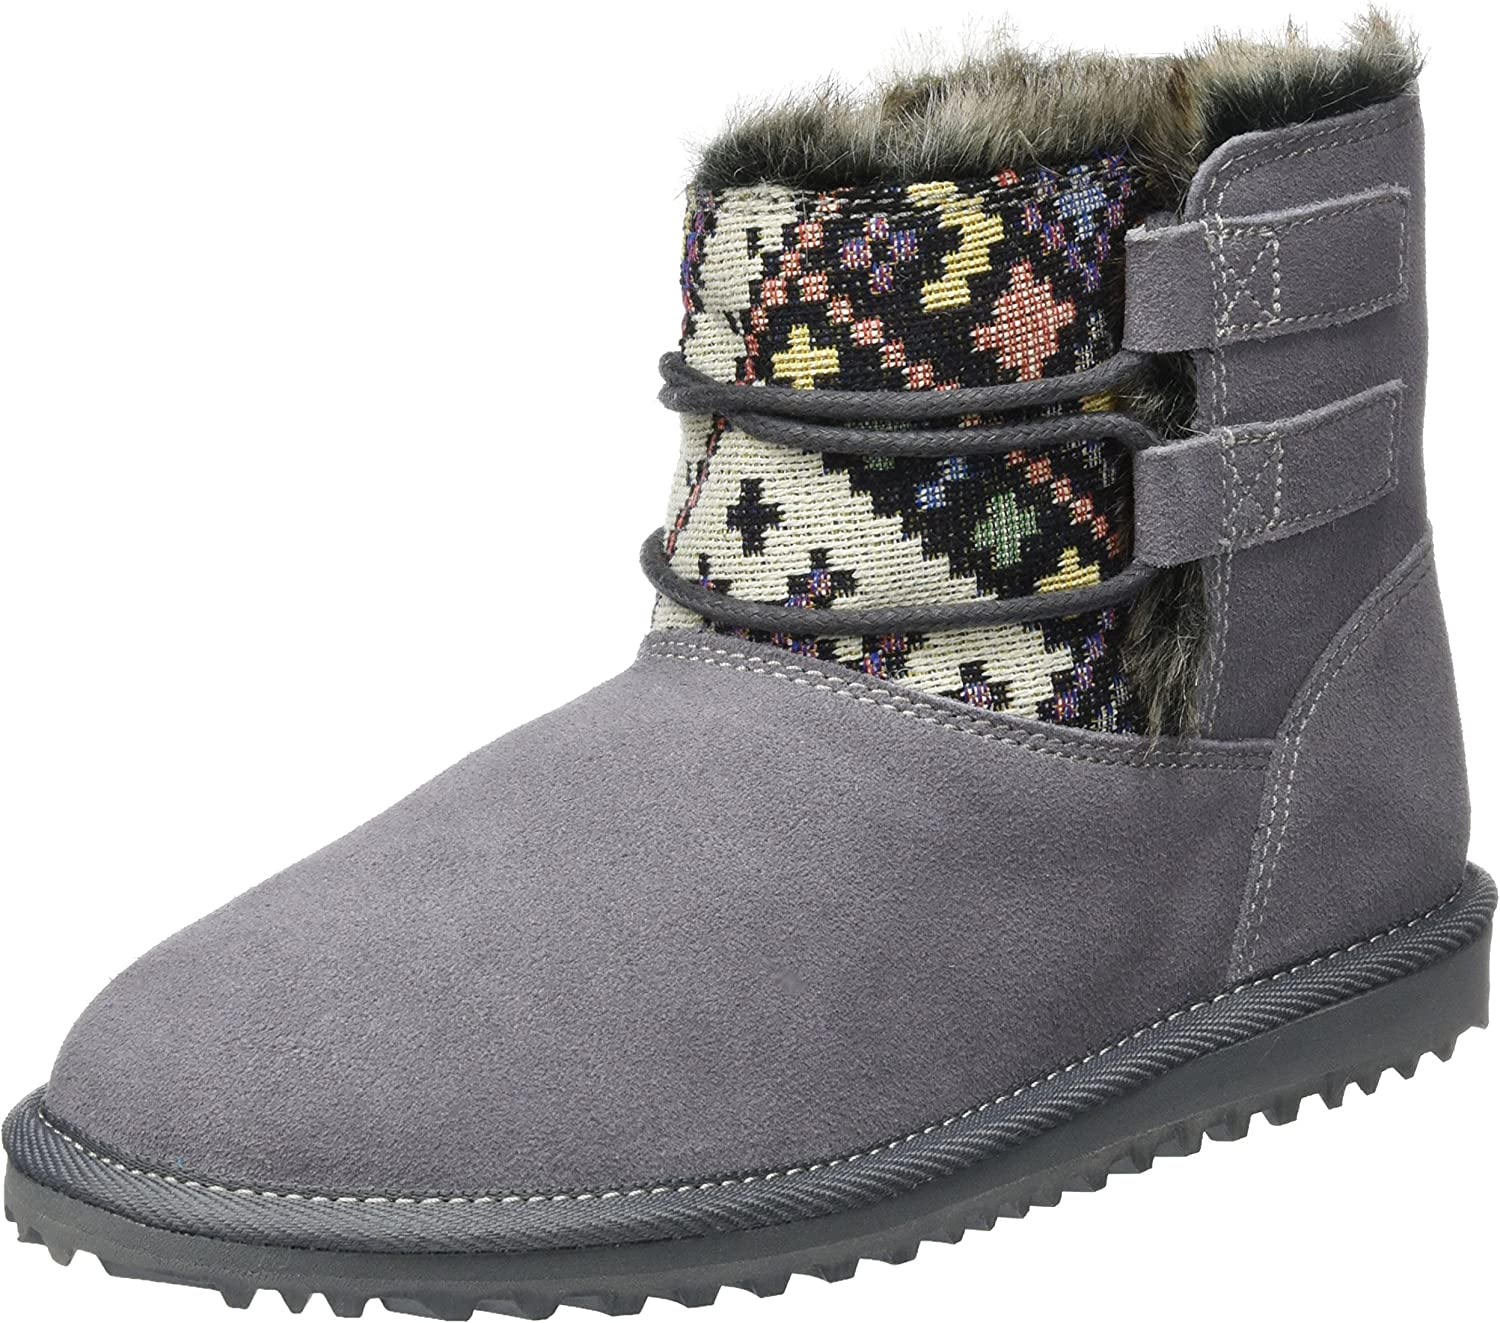 Roxy Grey Tara Womens Boots